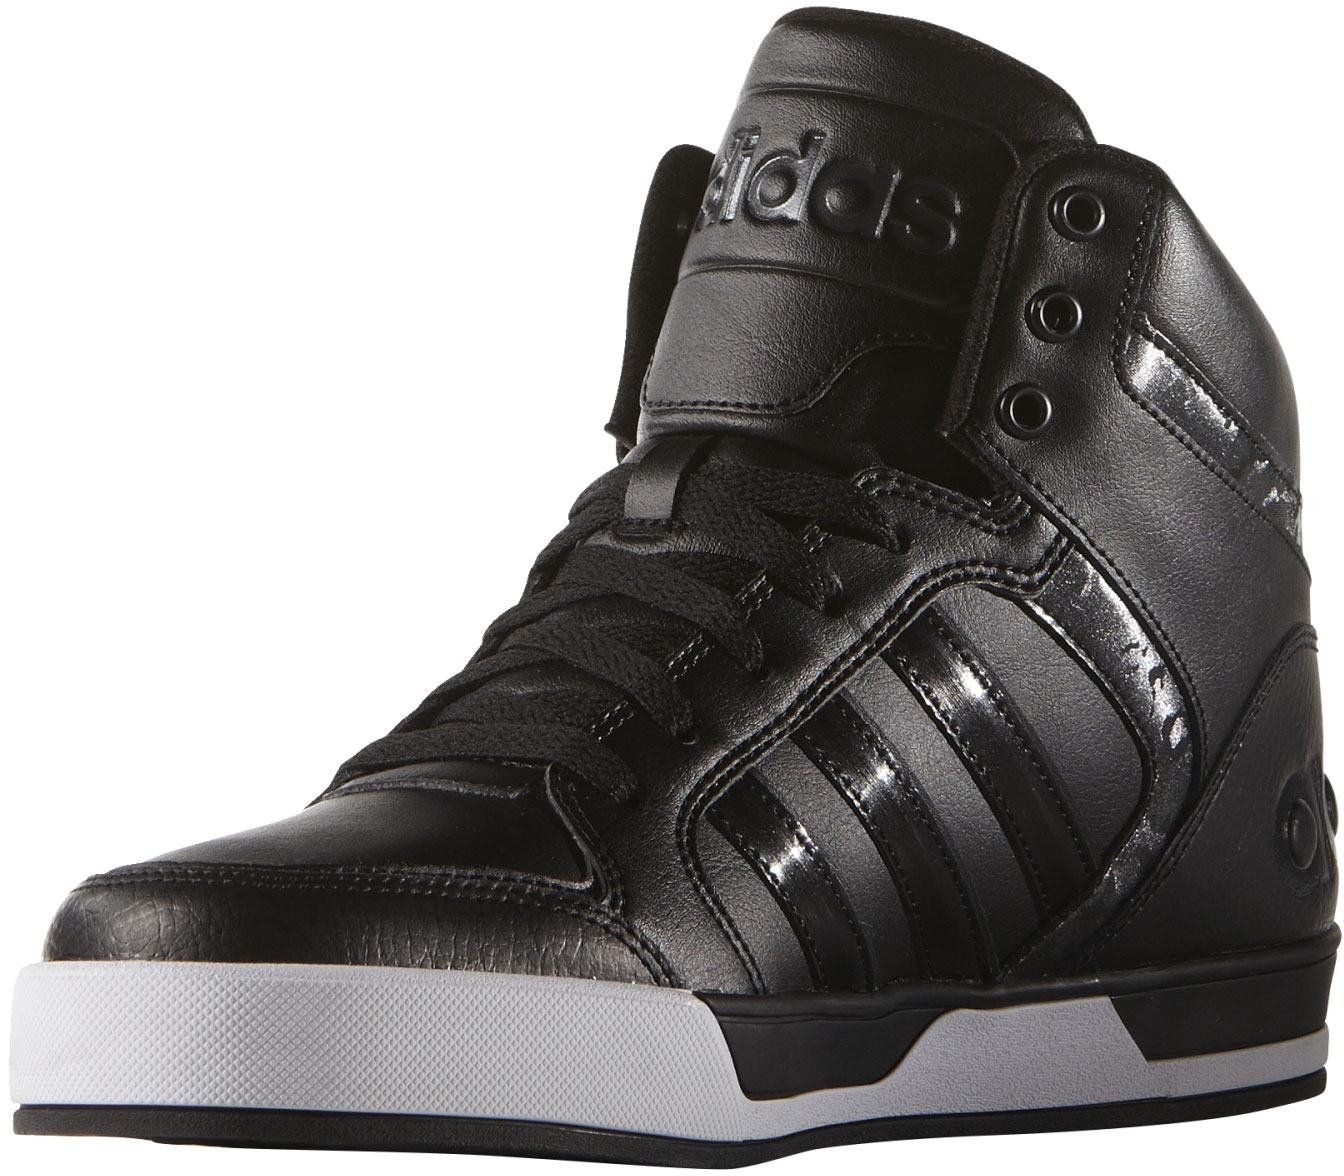 Adidas Raleigh Mid Shoes